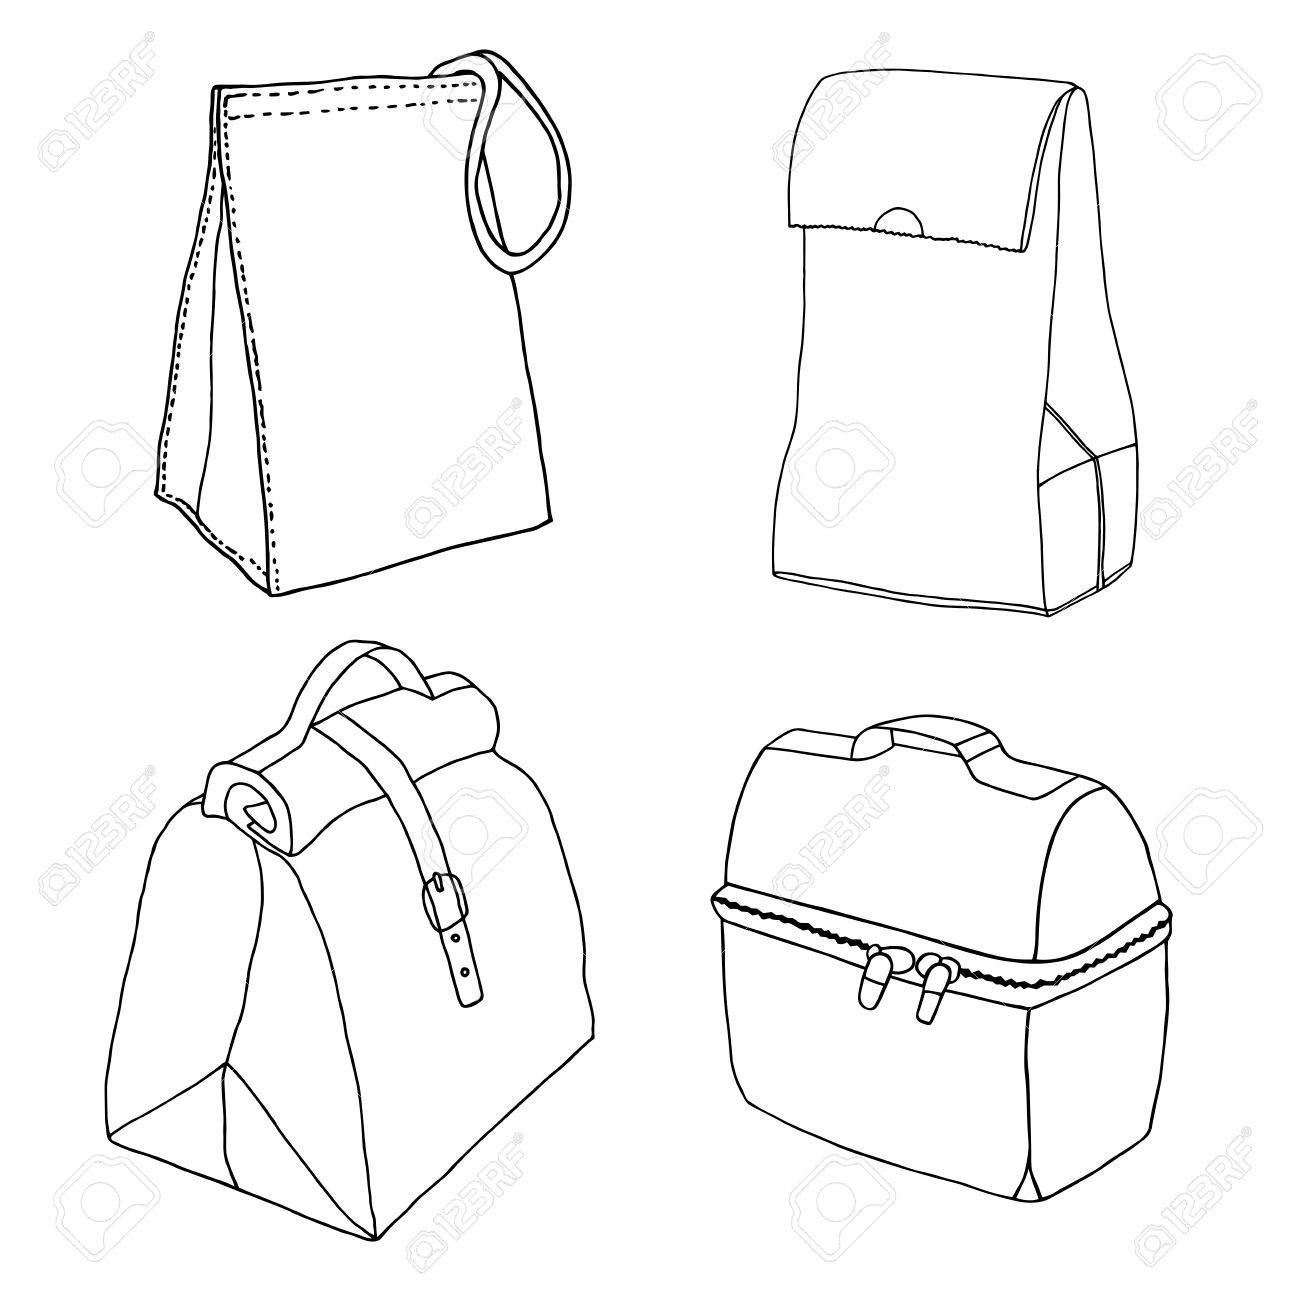 The Best Free Lunch Drawing Images Download From 227 Free